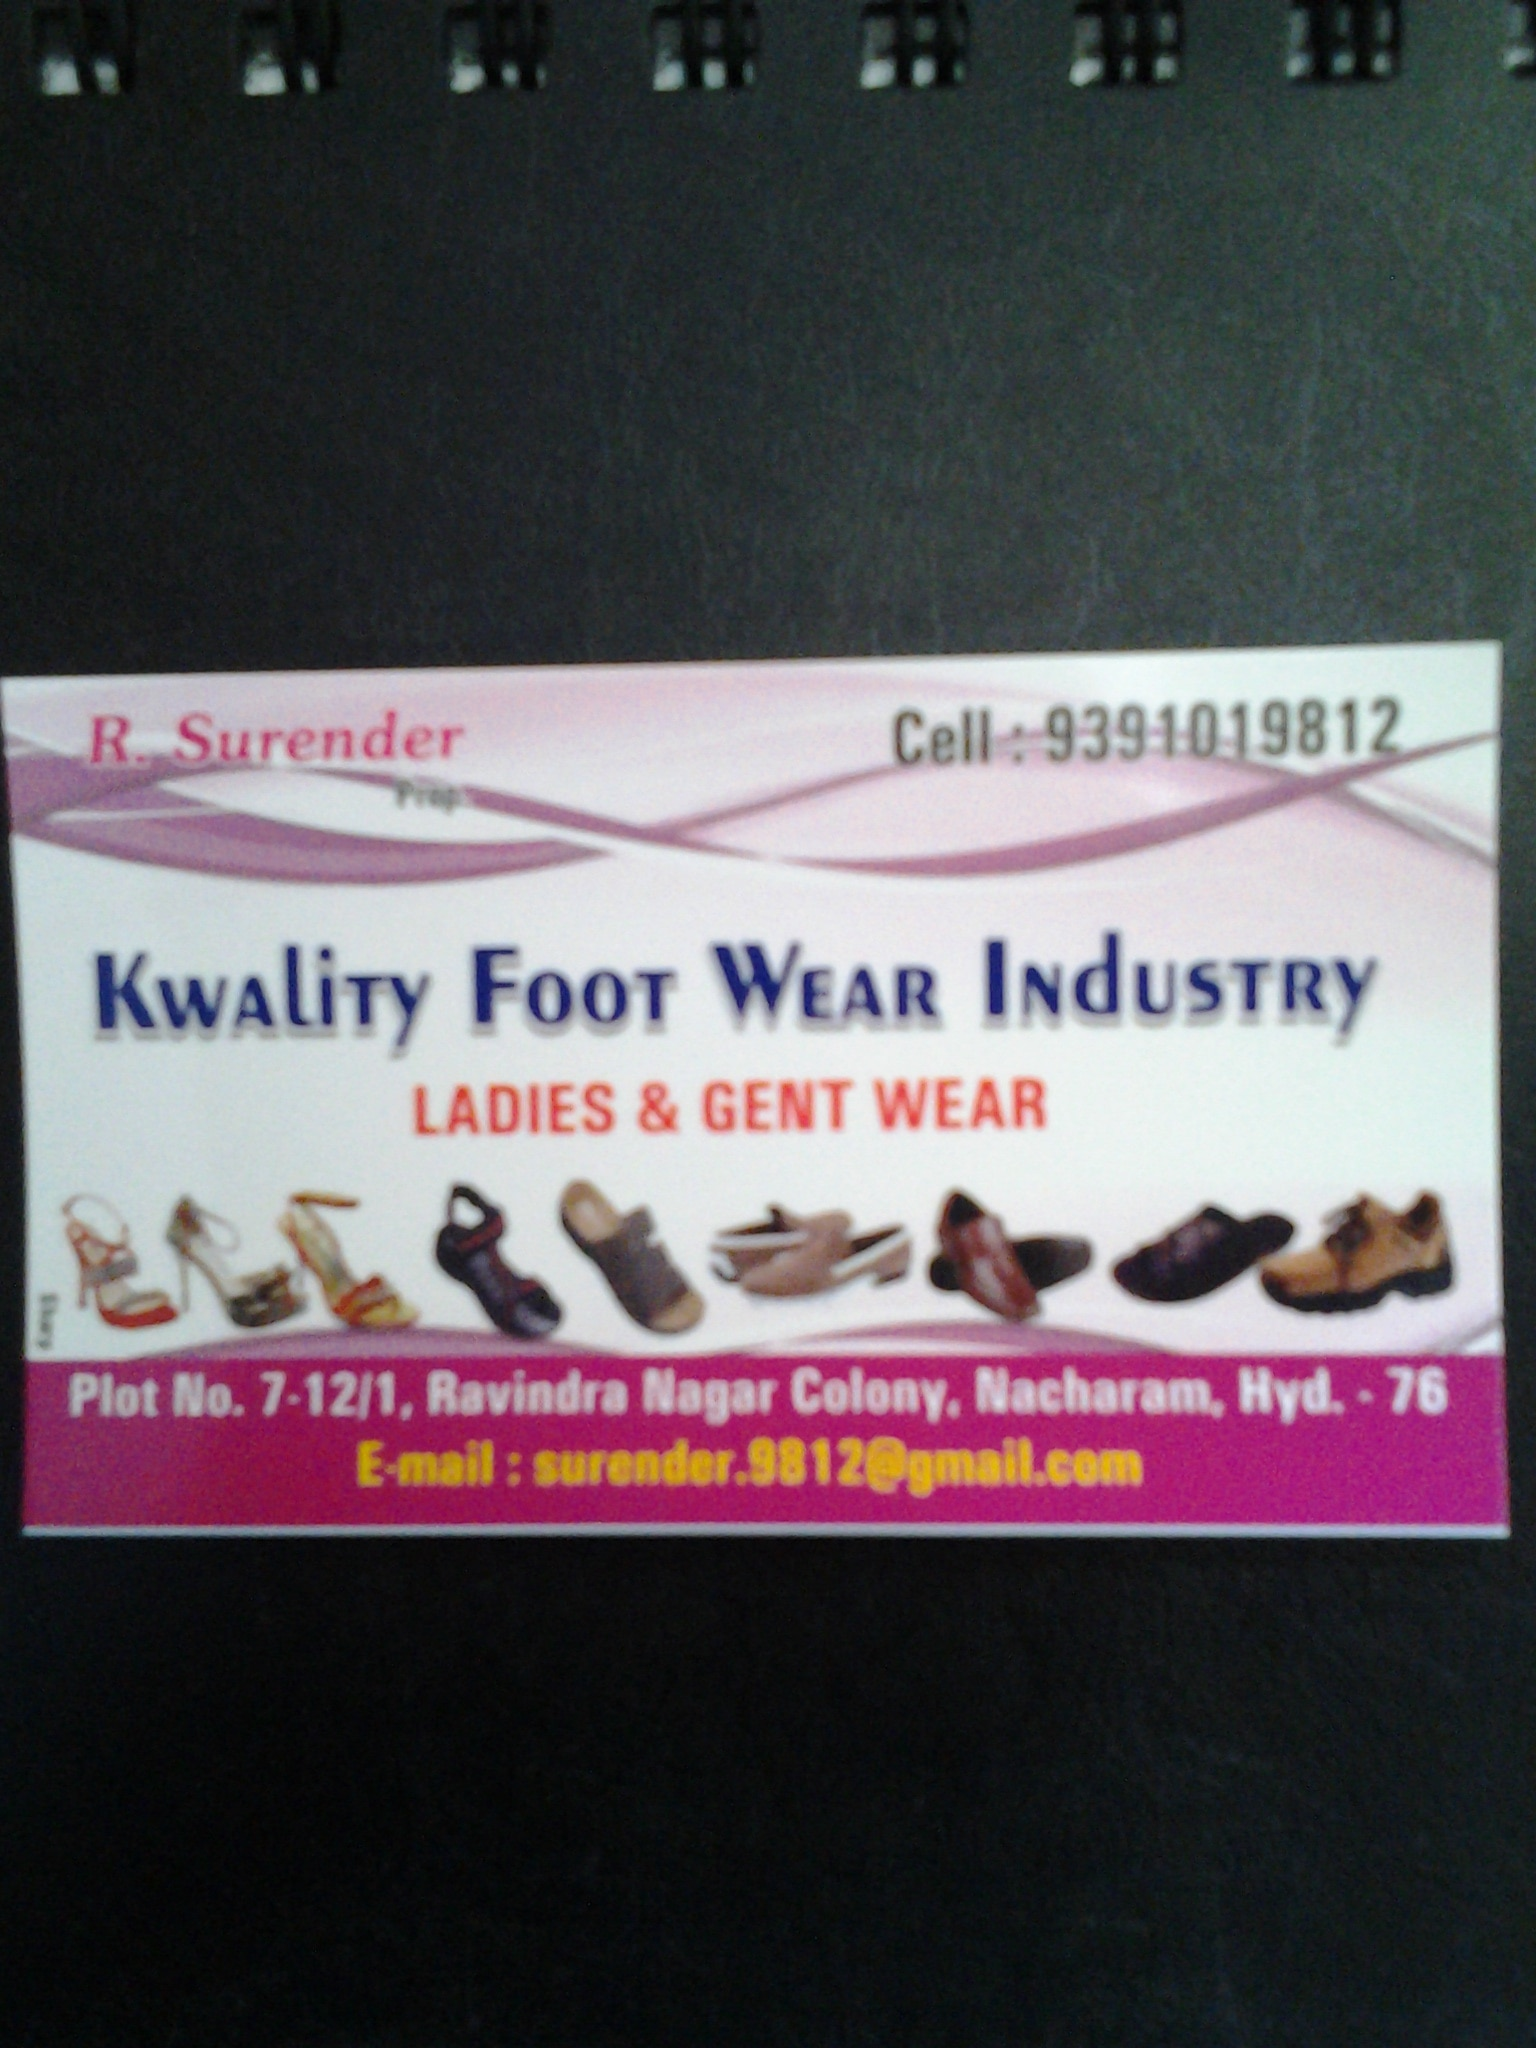 KWALITY FOOT WEAR INDUSTRY